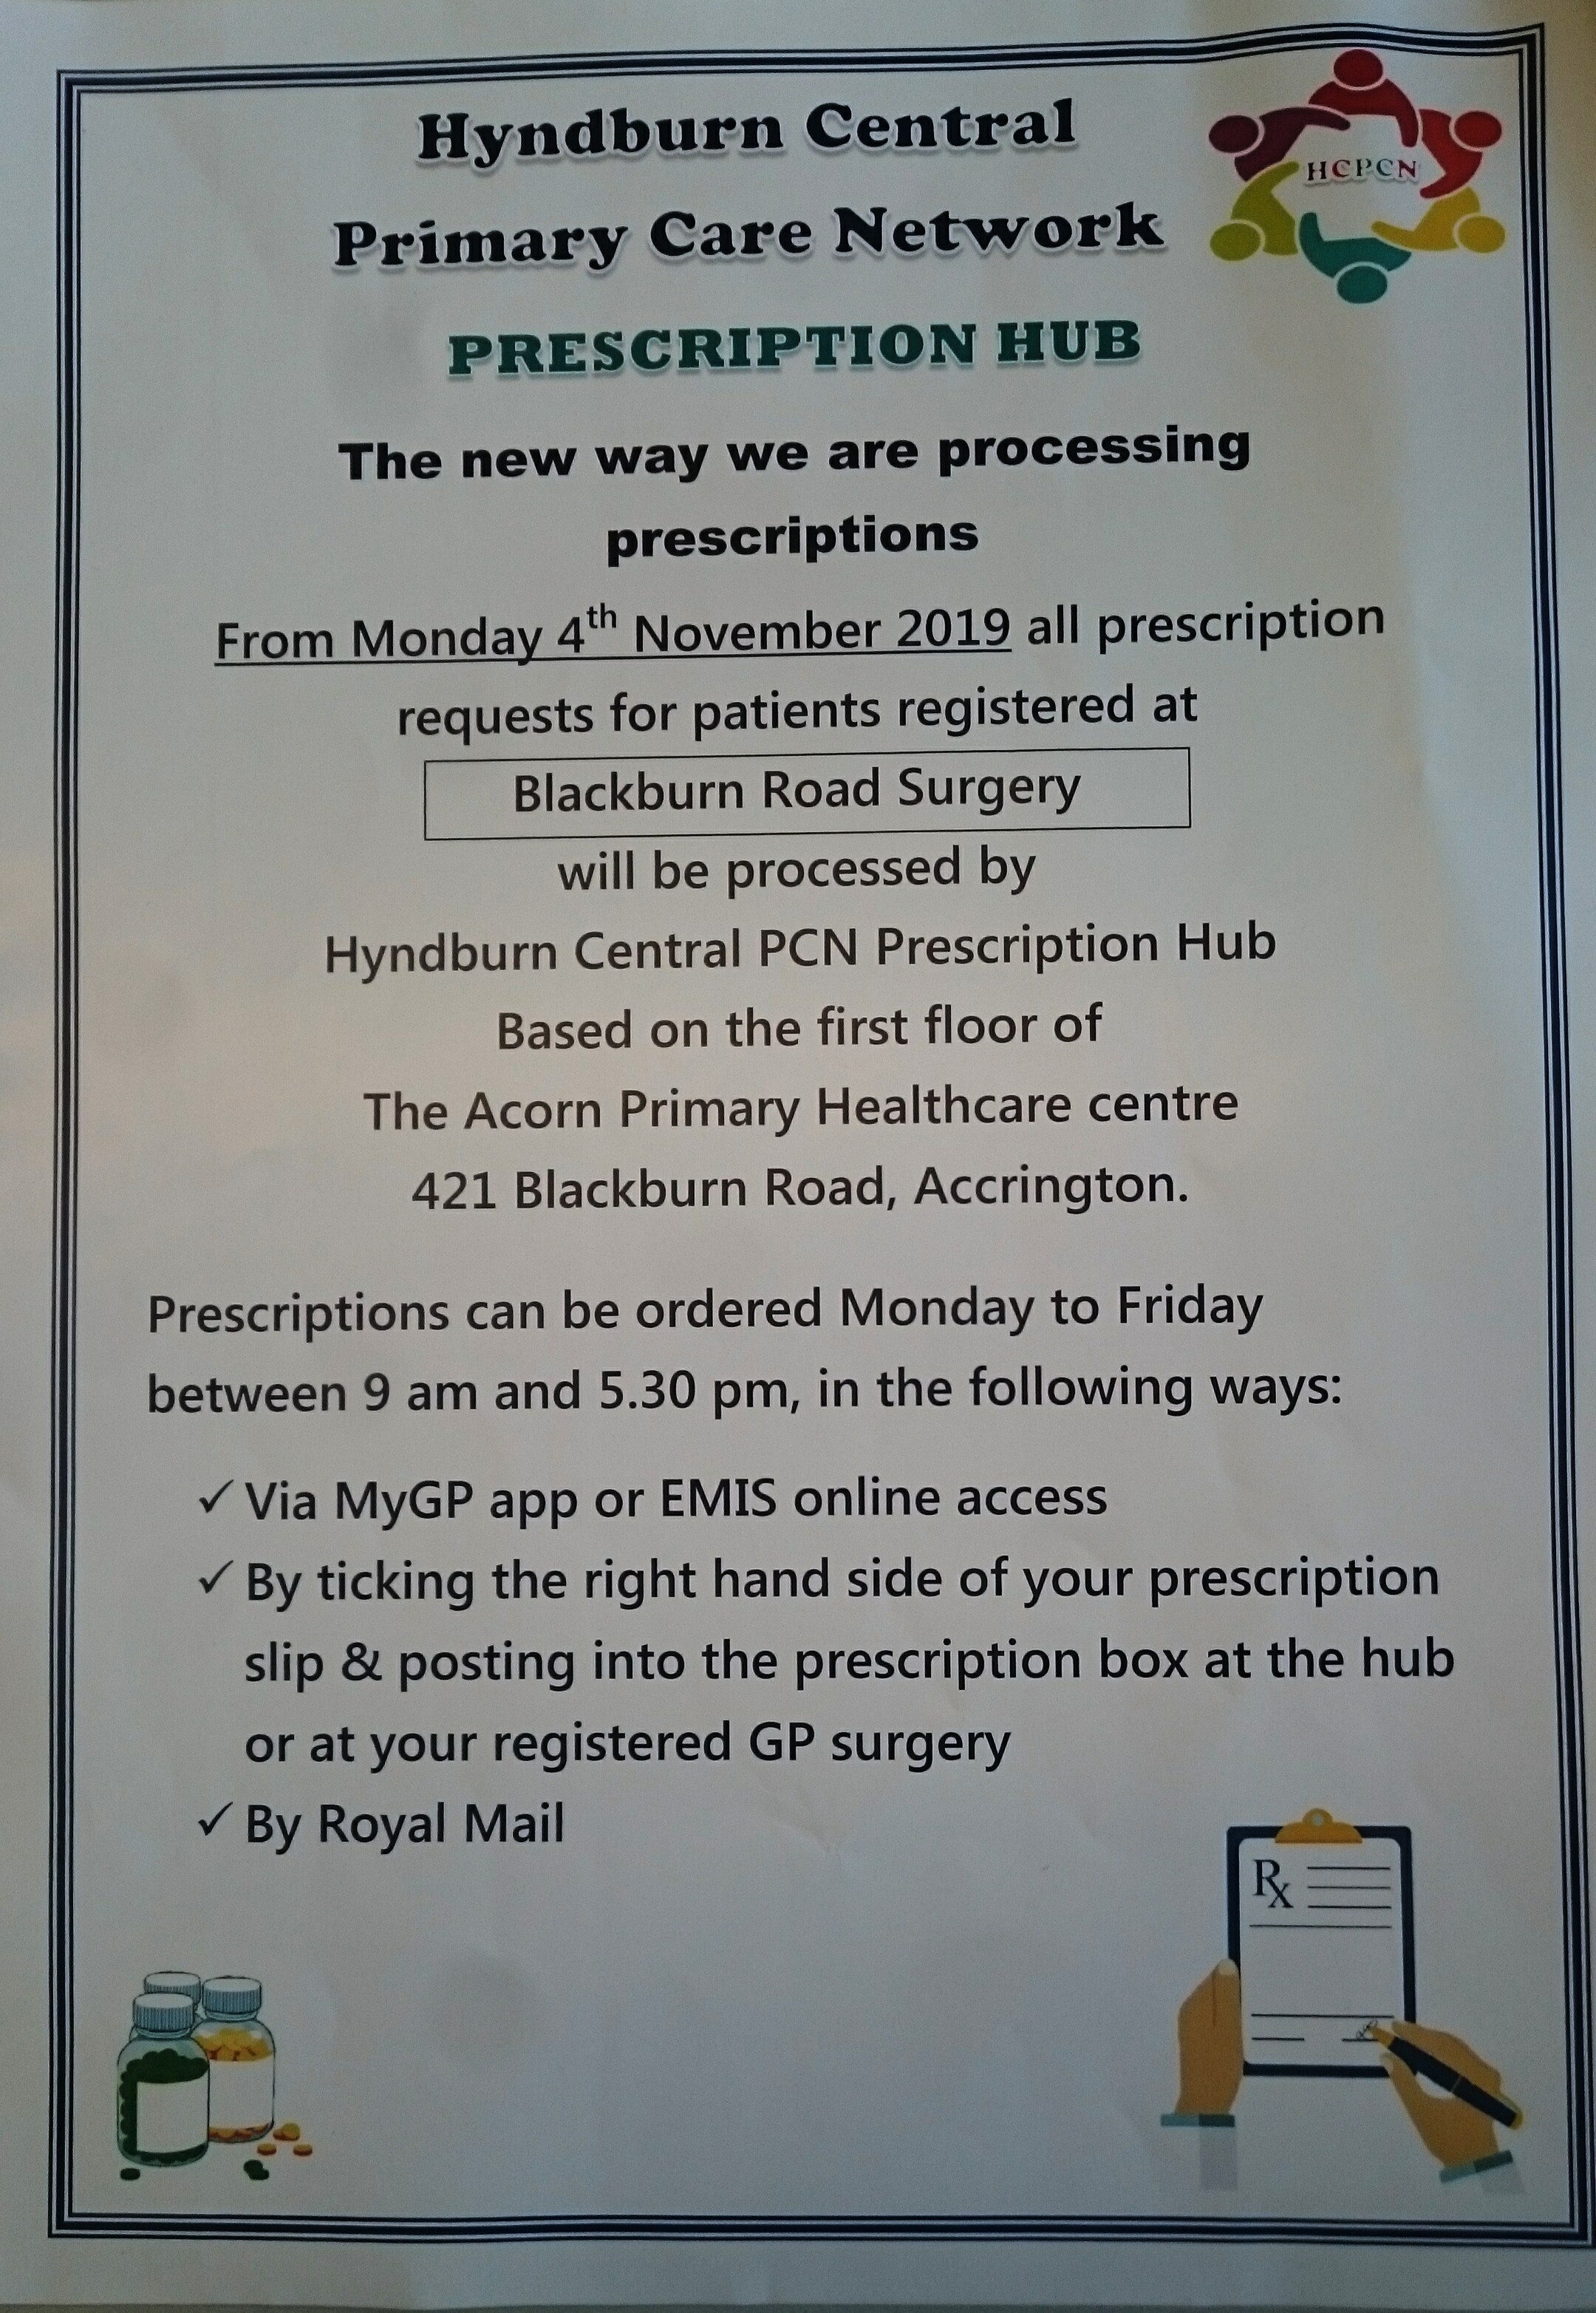 Hyndburn Central Primary Care Network Prescription Hub. The new way we are processing prescriptions.  From Monday 4th November 2019 all prescription requests for patients registered at Blackburn Road Surgery will be processed by Hyndburn Central PCN Prescription Hub.  Based on the first floor of the Acorn Primary Healthcare Centre 421 Blackburn Road, Accrington.  Prescriptions can be ordered Monday to Friday between 9am and 5.30pm in the following ways: Via MyGP app or EMIS online access.  By ticking the right hand side of your prescription slip and posting into the prescription box at the hub or your registered GP surgery.  By Royal Mail